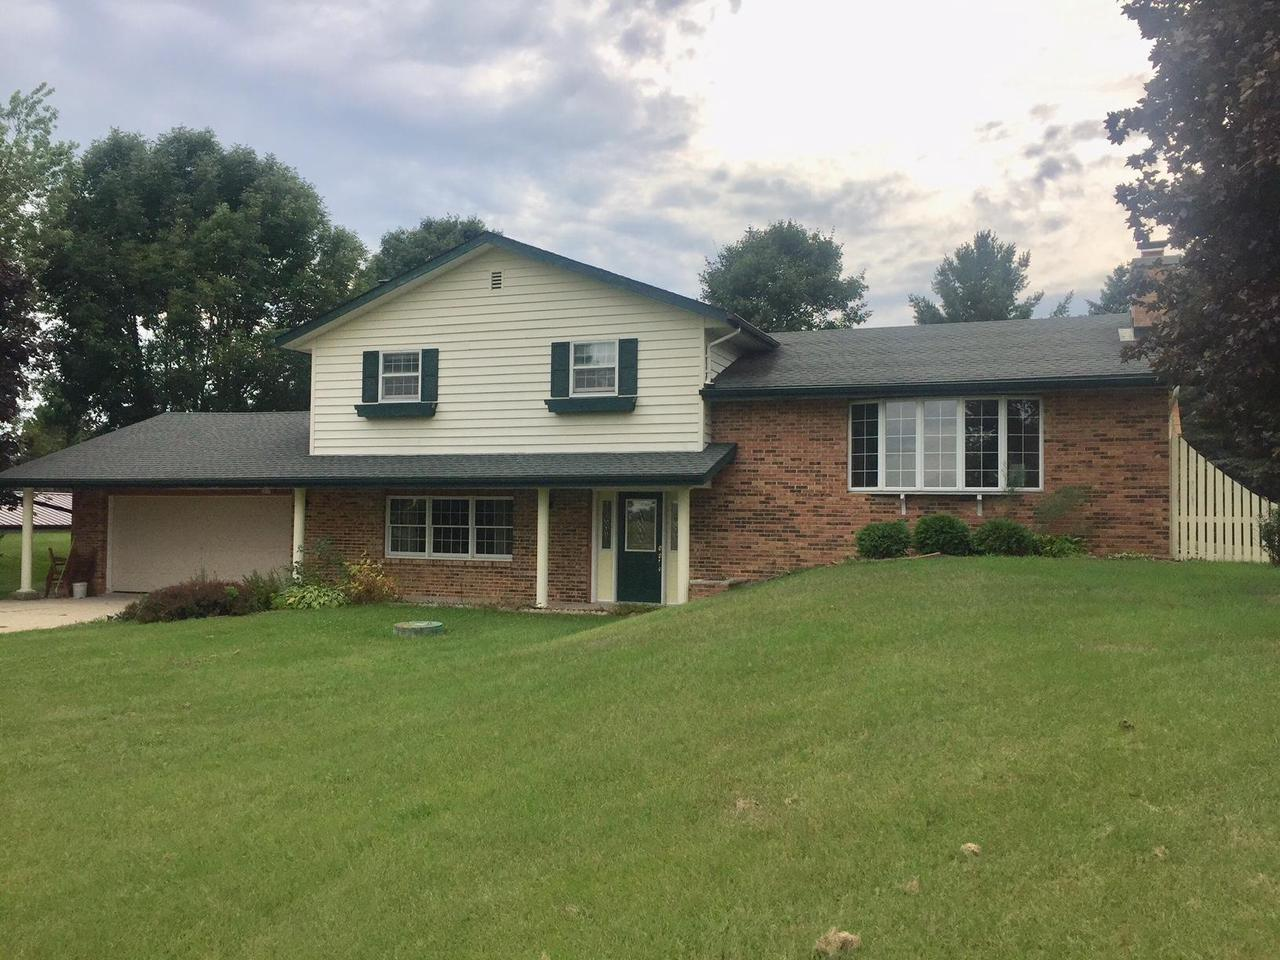 Excellent location!  This lovely home is located just outside of the city limits, but close to schools and city amenities!   Many nice features of this well built home include a LR with beautiful brick FP with wood mantel.  Nice size kitchen has quality cabinets and a nice size dinette.  The semi open concept floor plan includes a 3 season sunroom off on the dining area and a FR with woodstove off of the front entry!  The bedrooms are all spacious with large closets.  The MBR features a WIC and private bath with shower.  A main floor laundry with 1/2 bath has a door leading to the backyard.  This home has some nice updates and has great space and a beautiful park-like setting!  Don't miss out on a great property in a great location!  Room sizes are estimated.  More photos to follow...